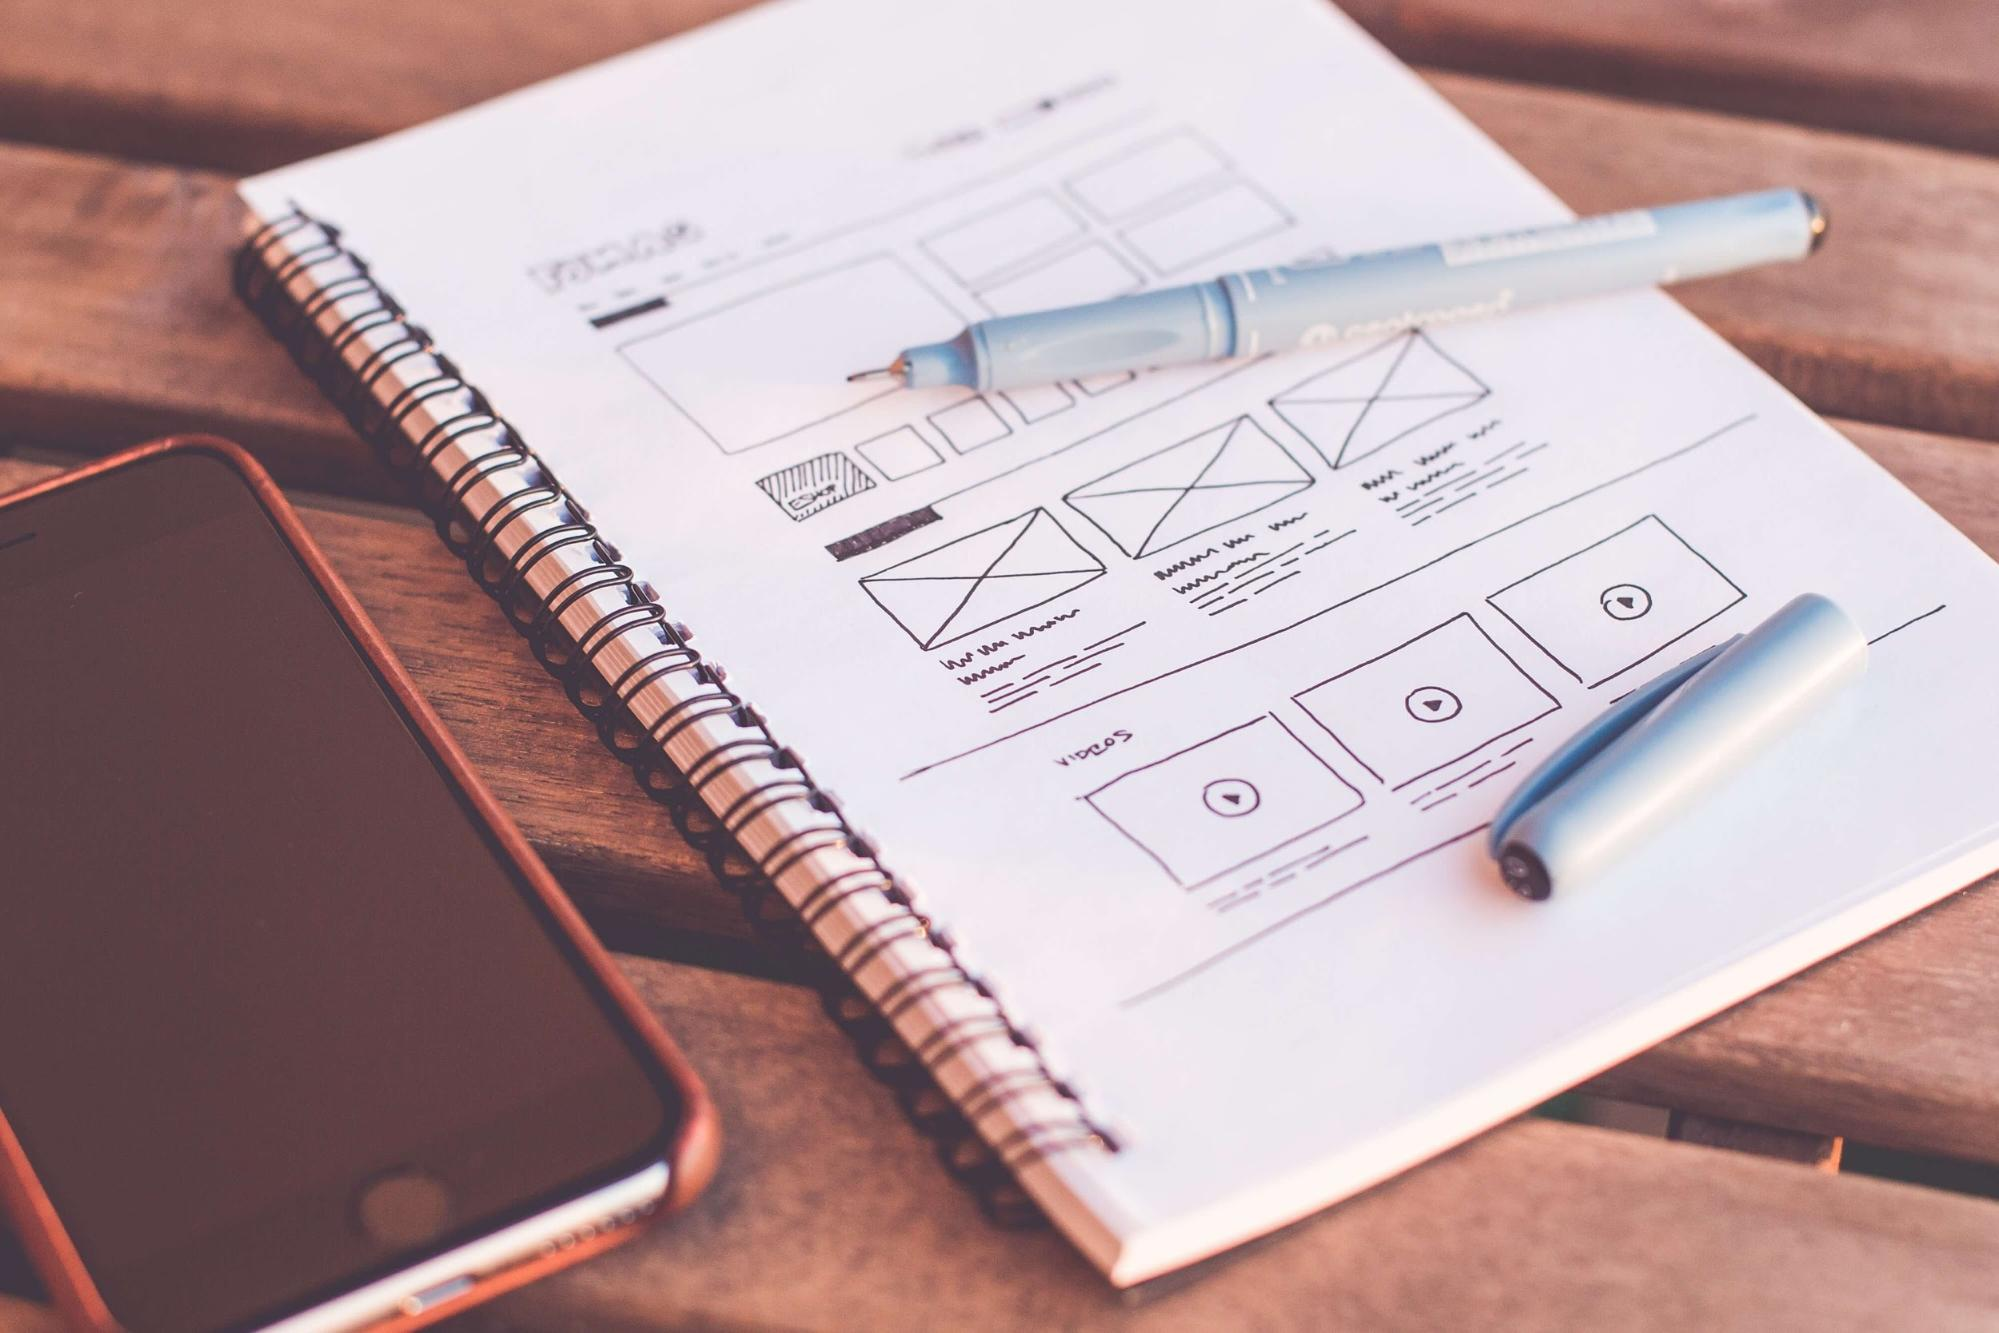 A notebook mapping out website design